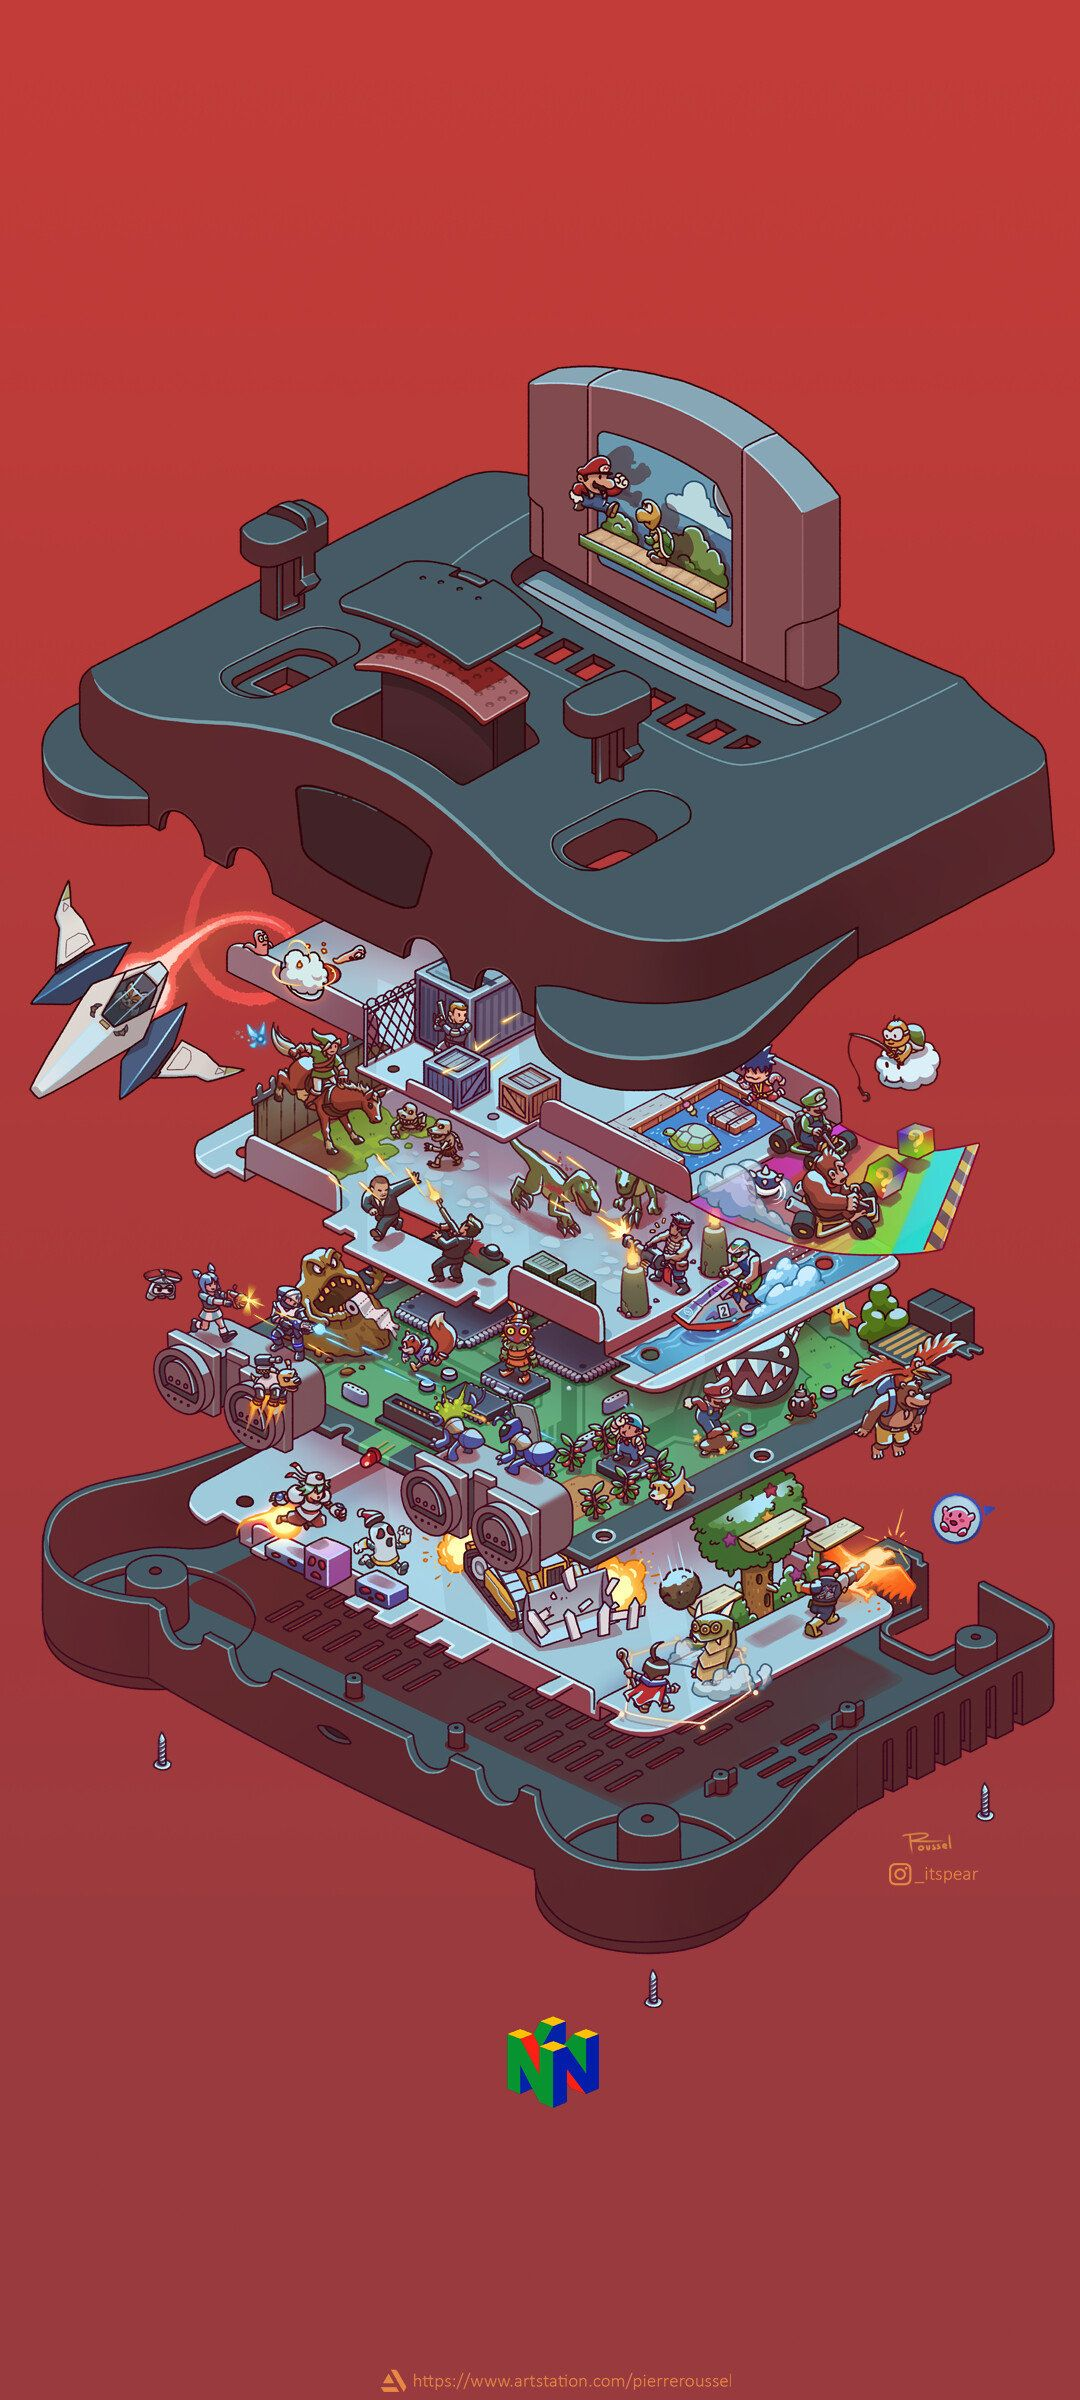 Nintendo 64 Retro Games Wallpaper Retro Gaming Art Iphone Wallpaper Video